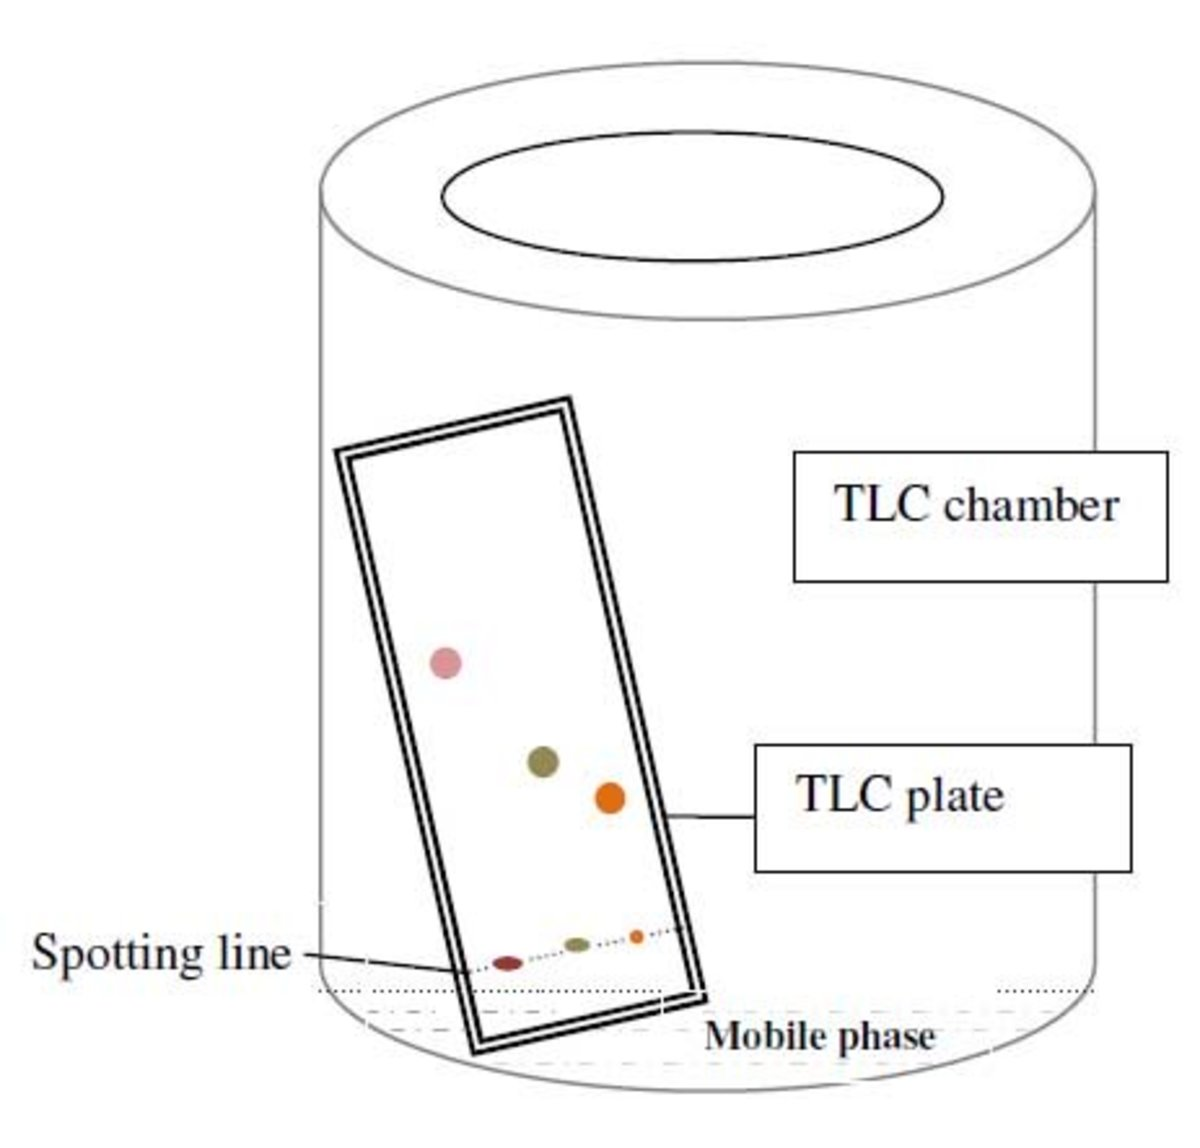 Thin Layer Chromatography (TLC): Principle and Procedure